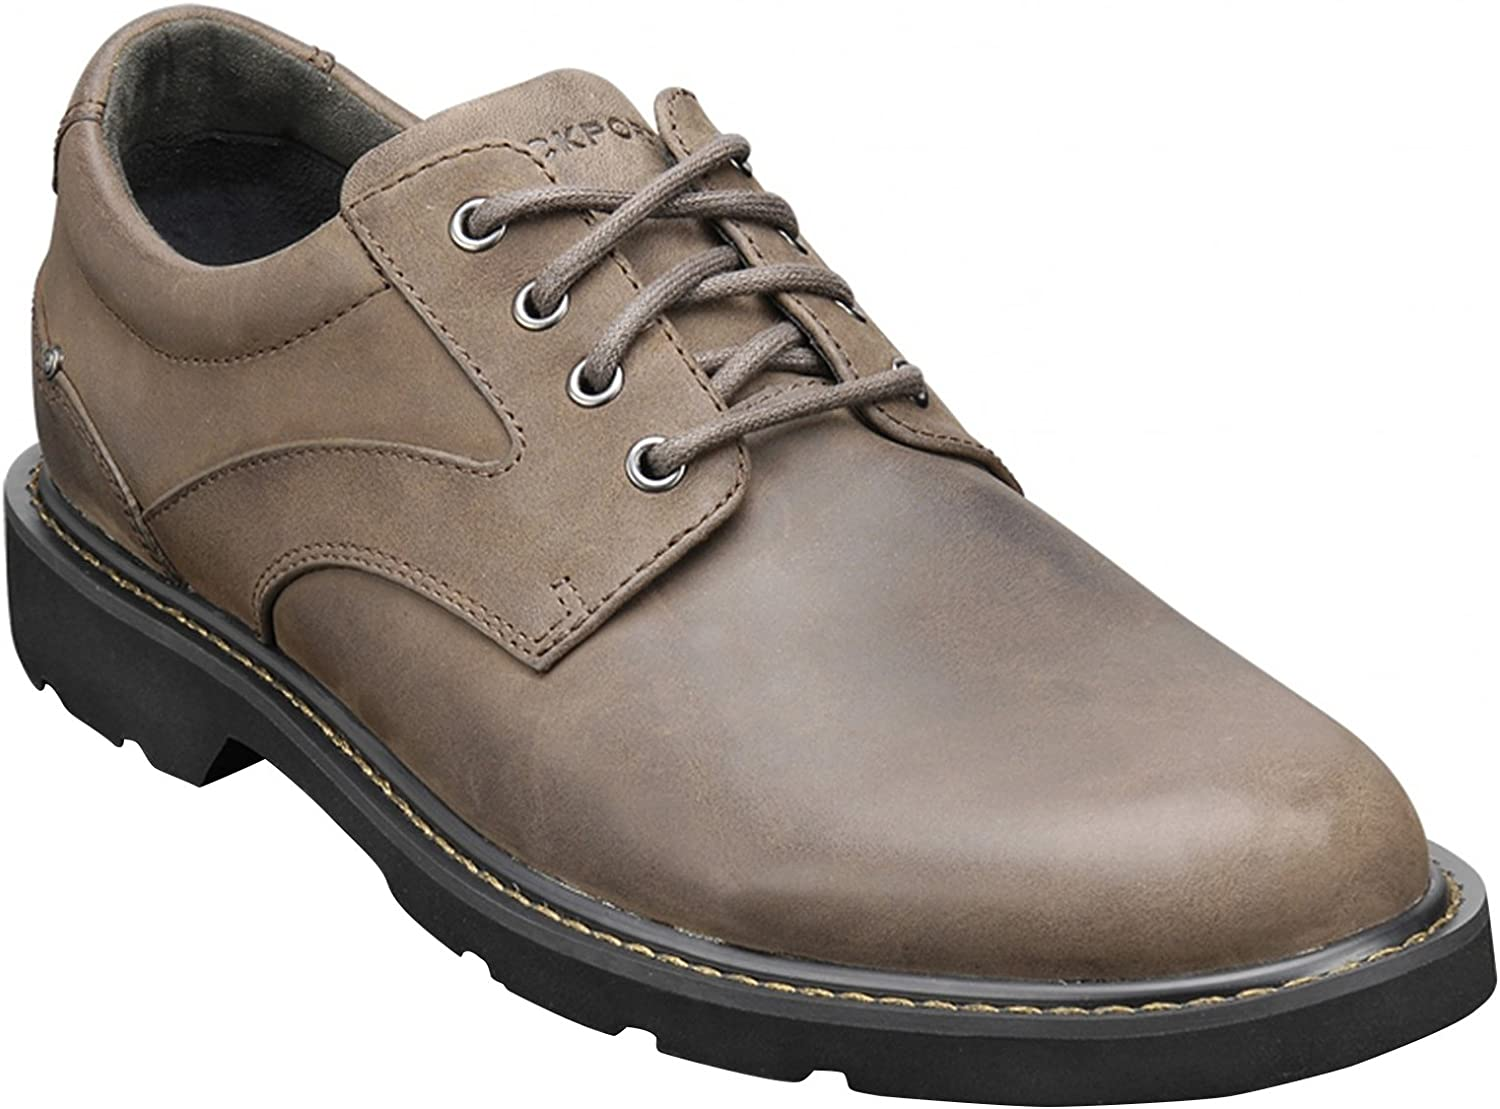 Rockport K71053 Charlesview Mens shoes